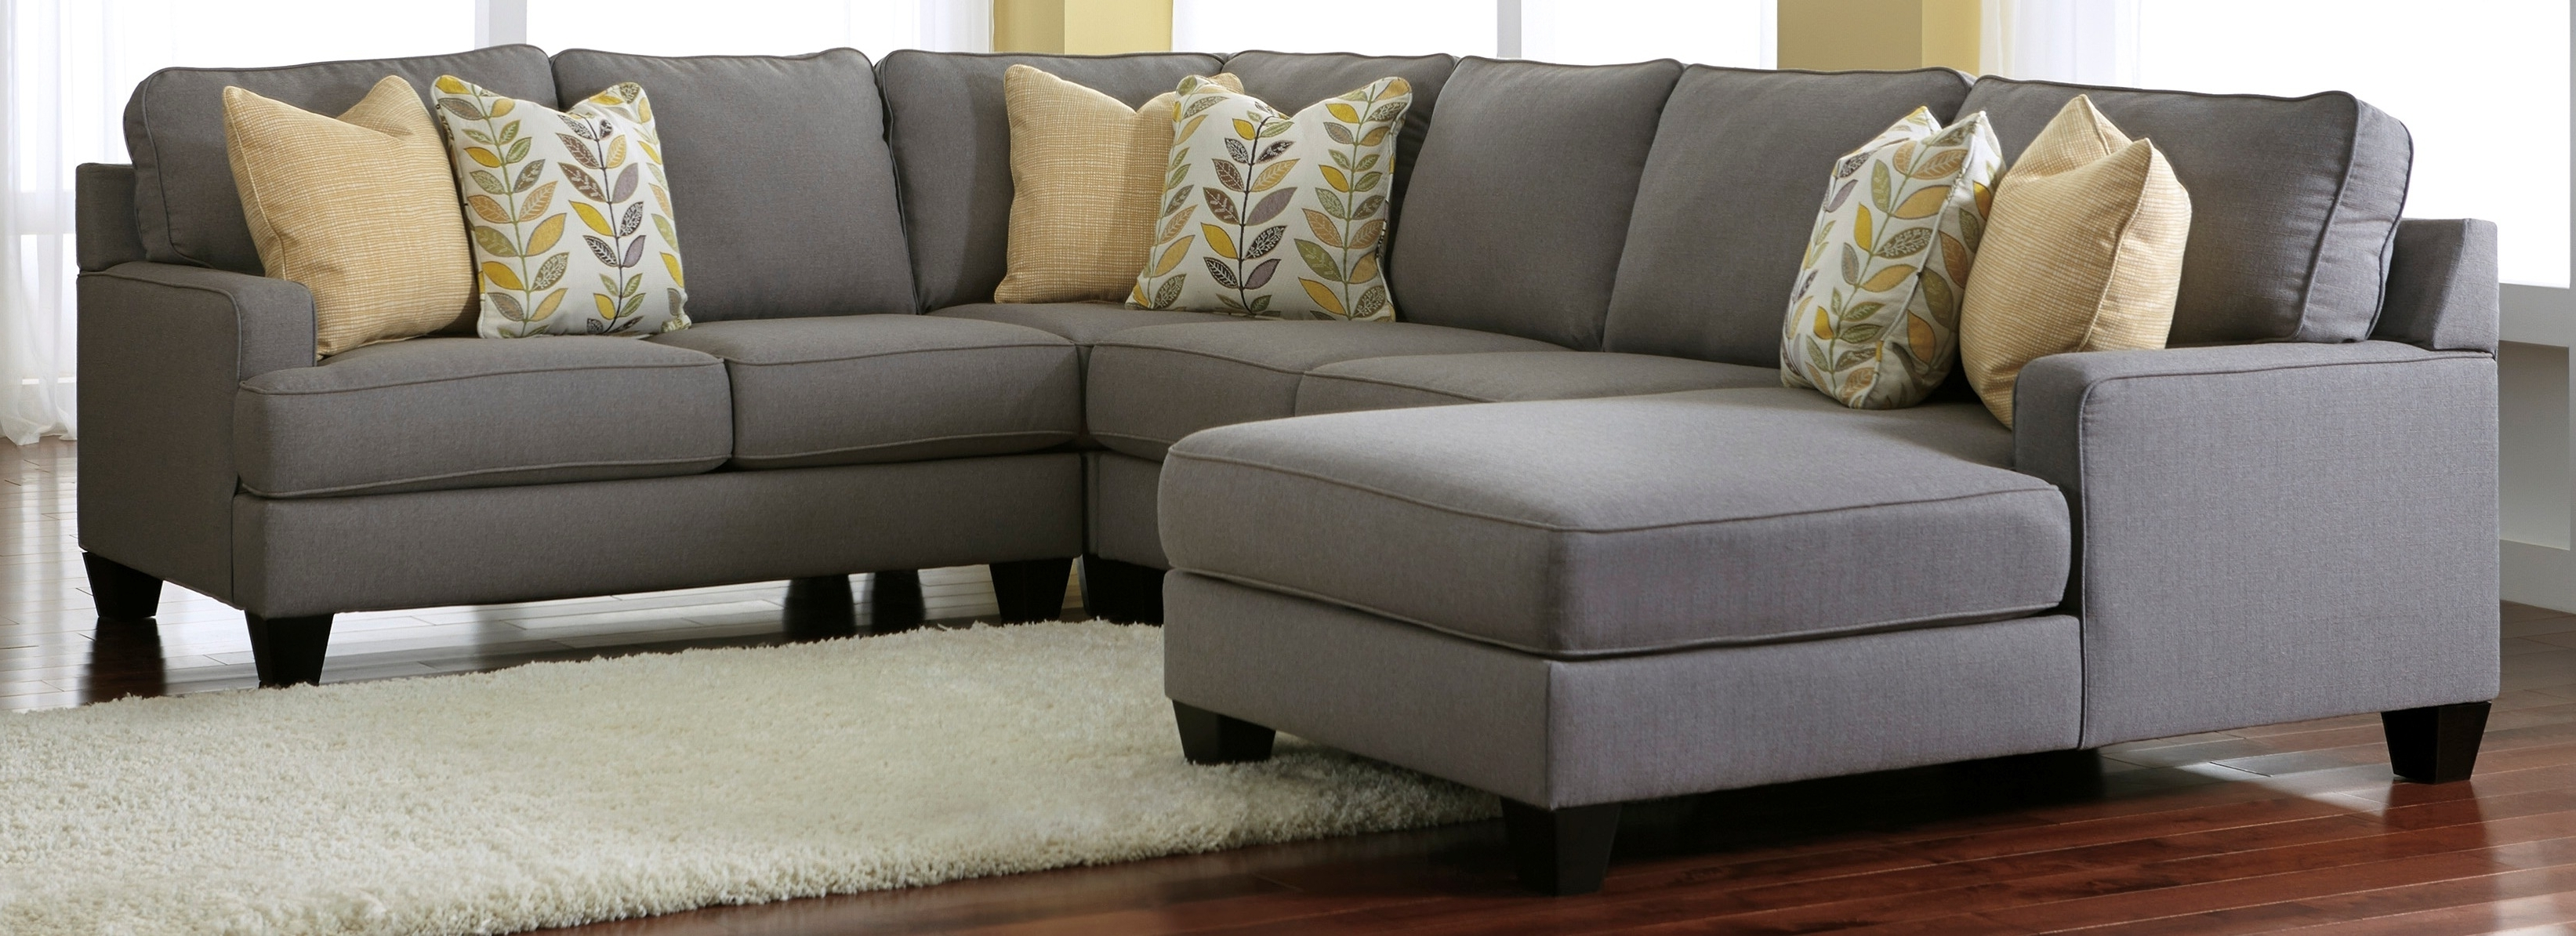 Buy Ashley Furniture 2430216 2430234 2430277 2430256 Chamberly For Latest Ashley Furniture Chaise Sofas (View 8 of 15)